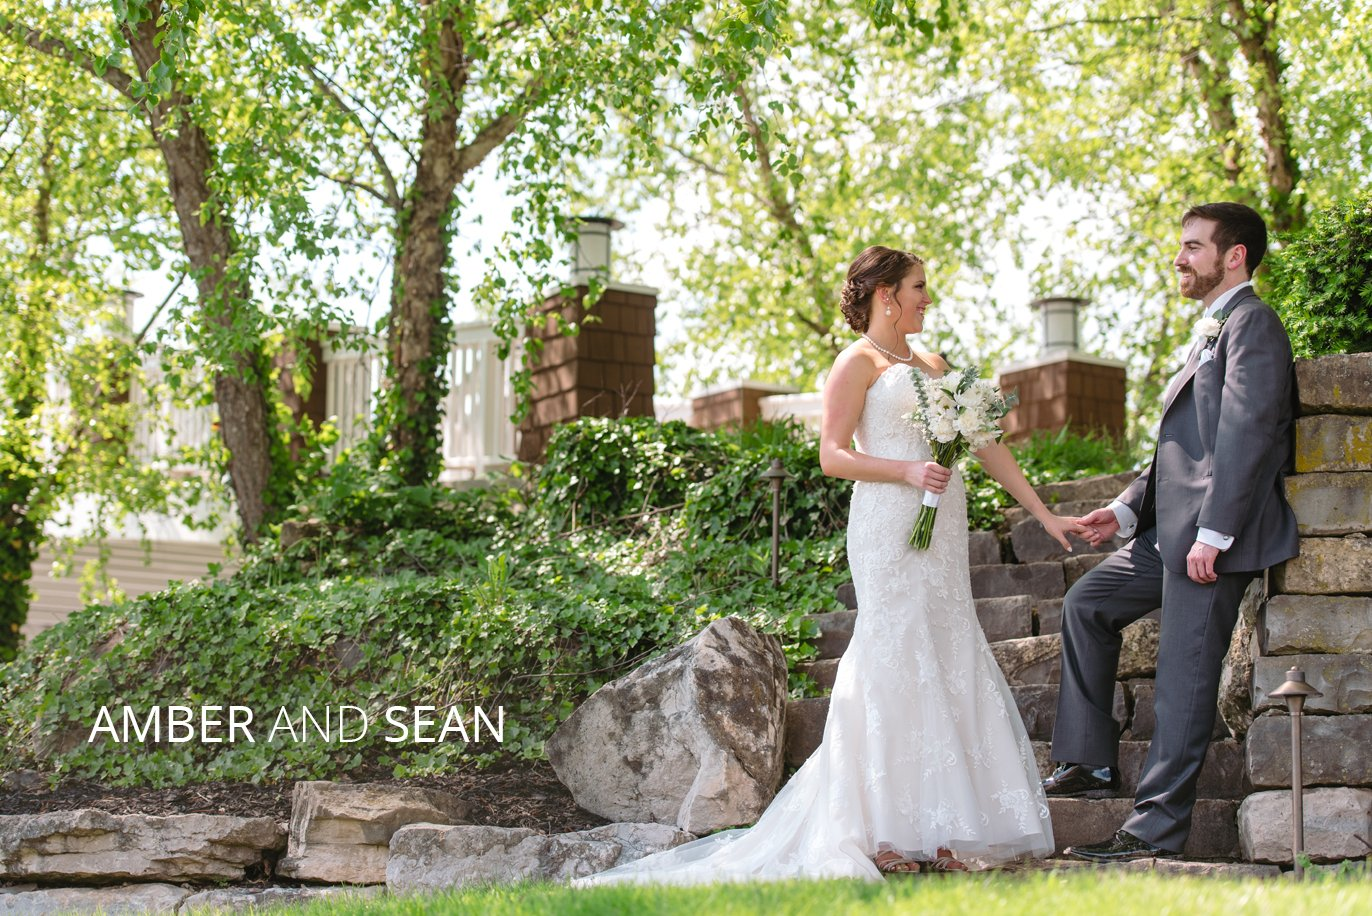 sean and amber outside on their wedding day